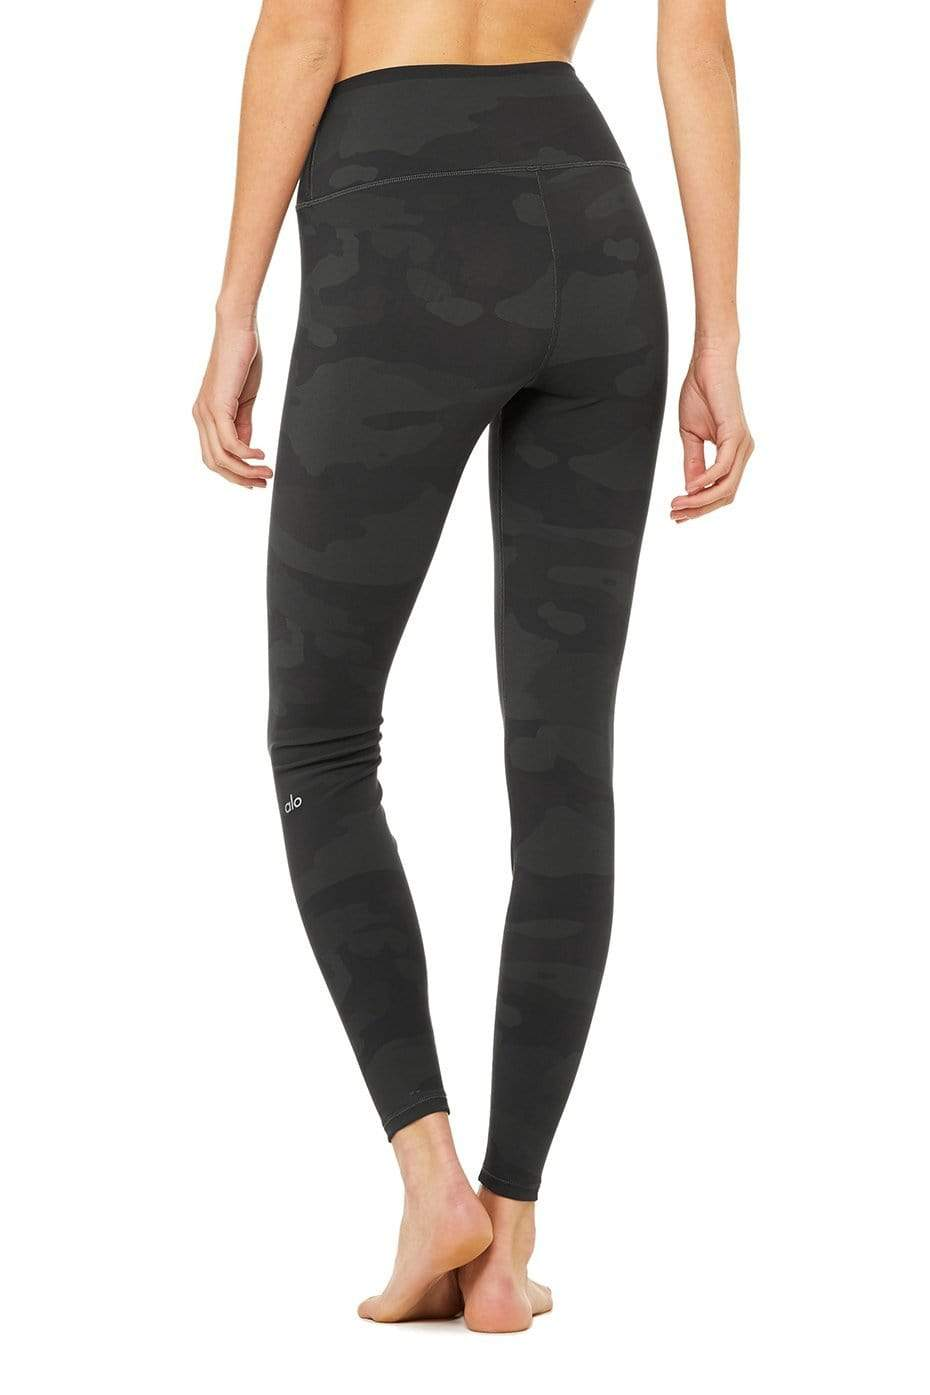 sneakers for cheap factory outlets limited price Alo Yoga High Waist Vapor Legging - Black Camouflage